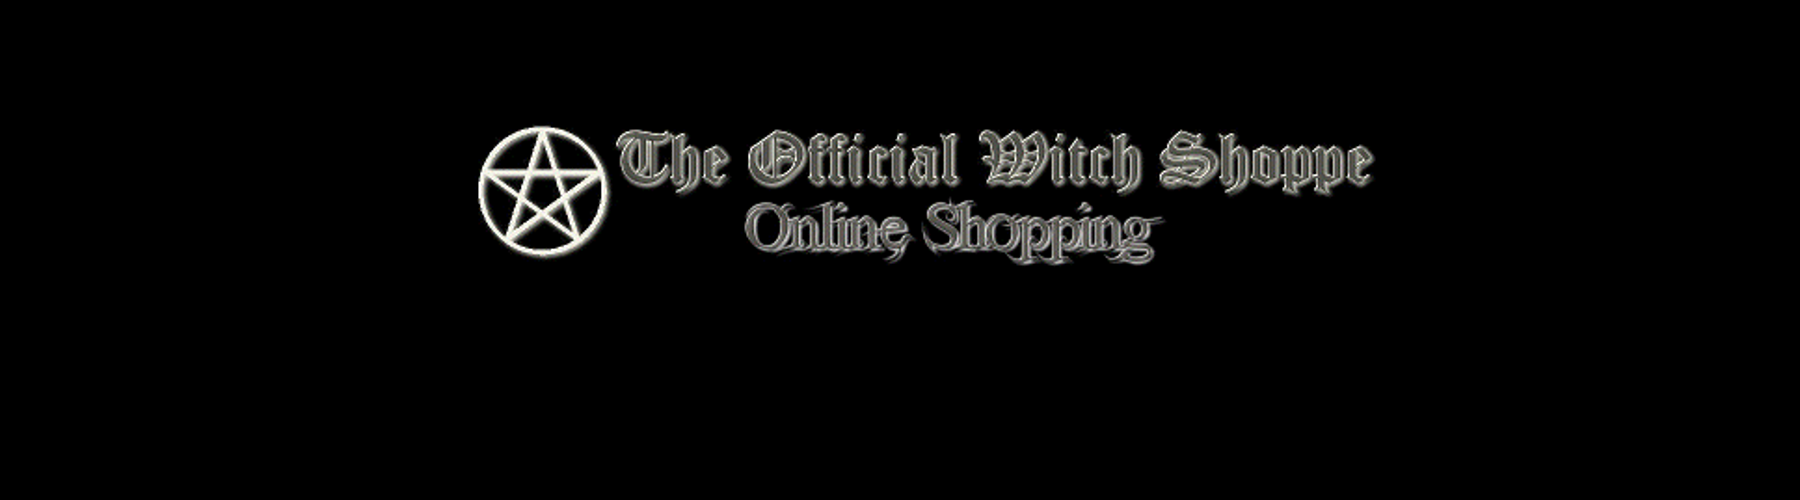 The Official Witch Shoppe Online Shopping